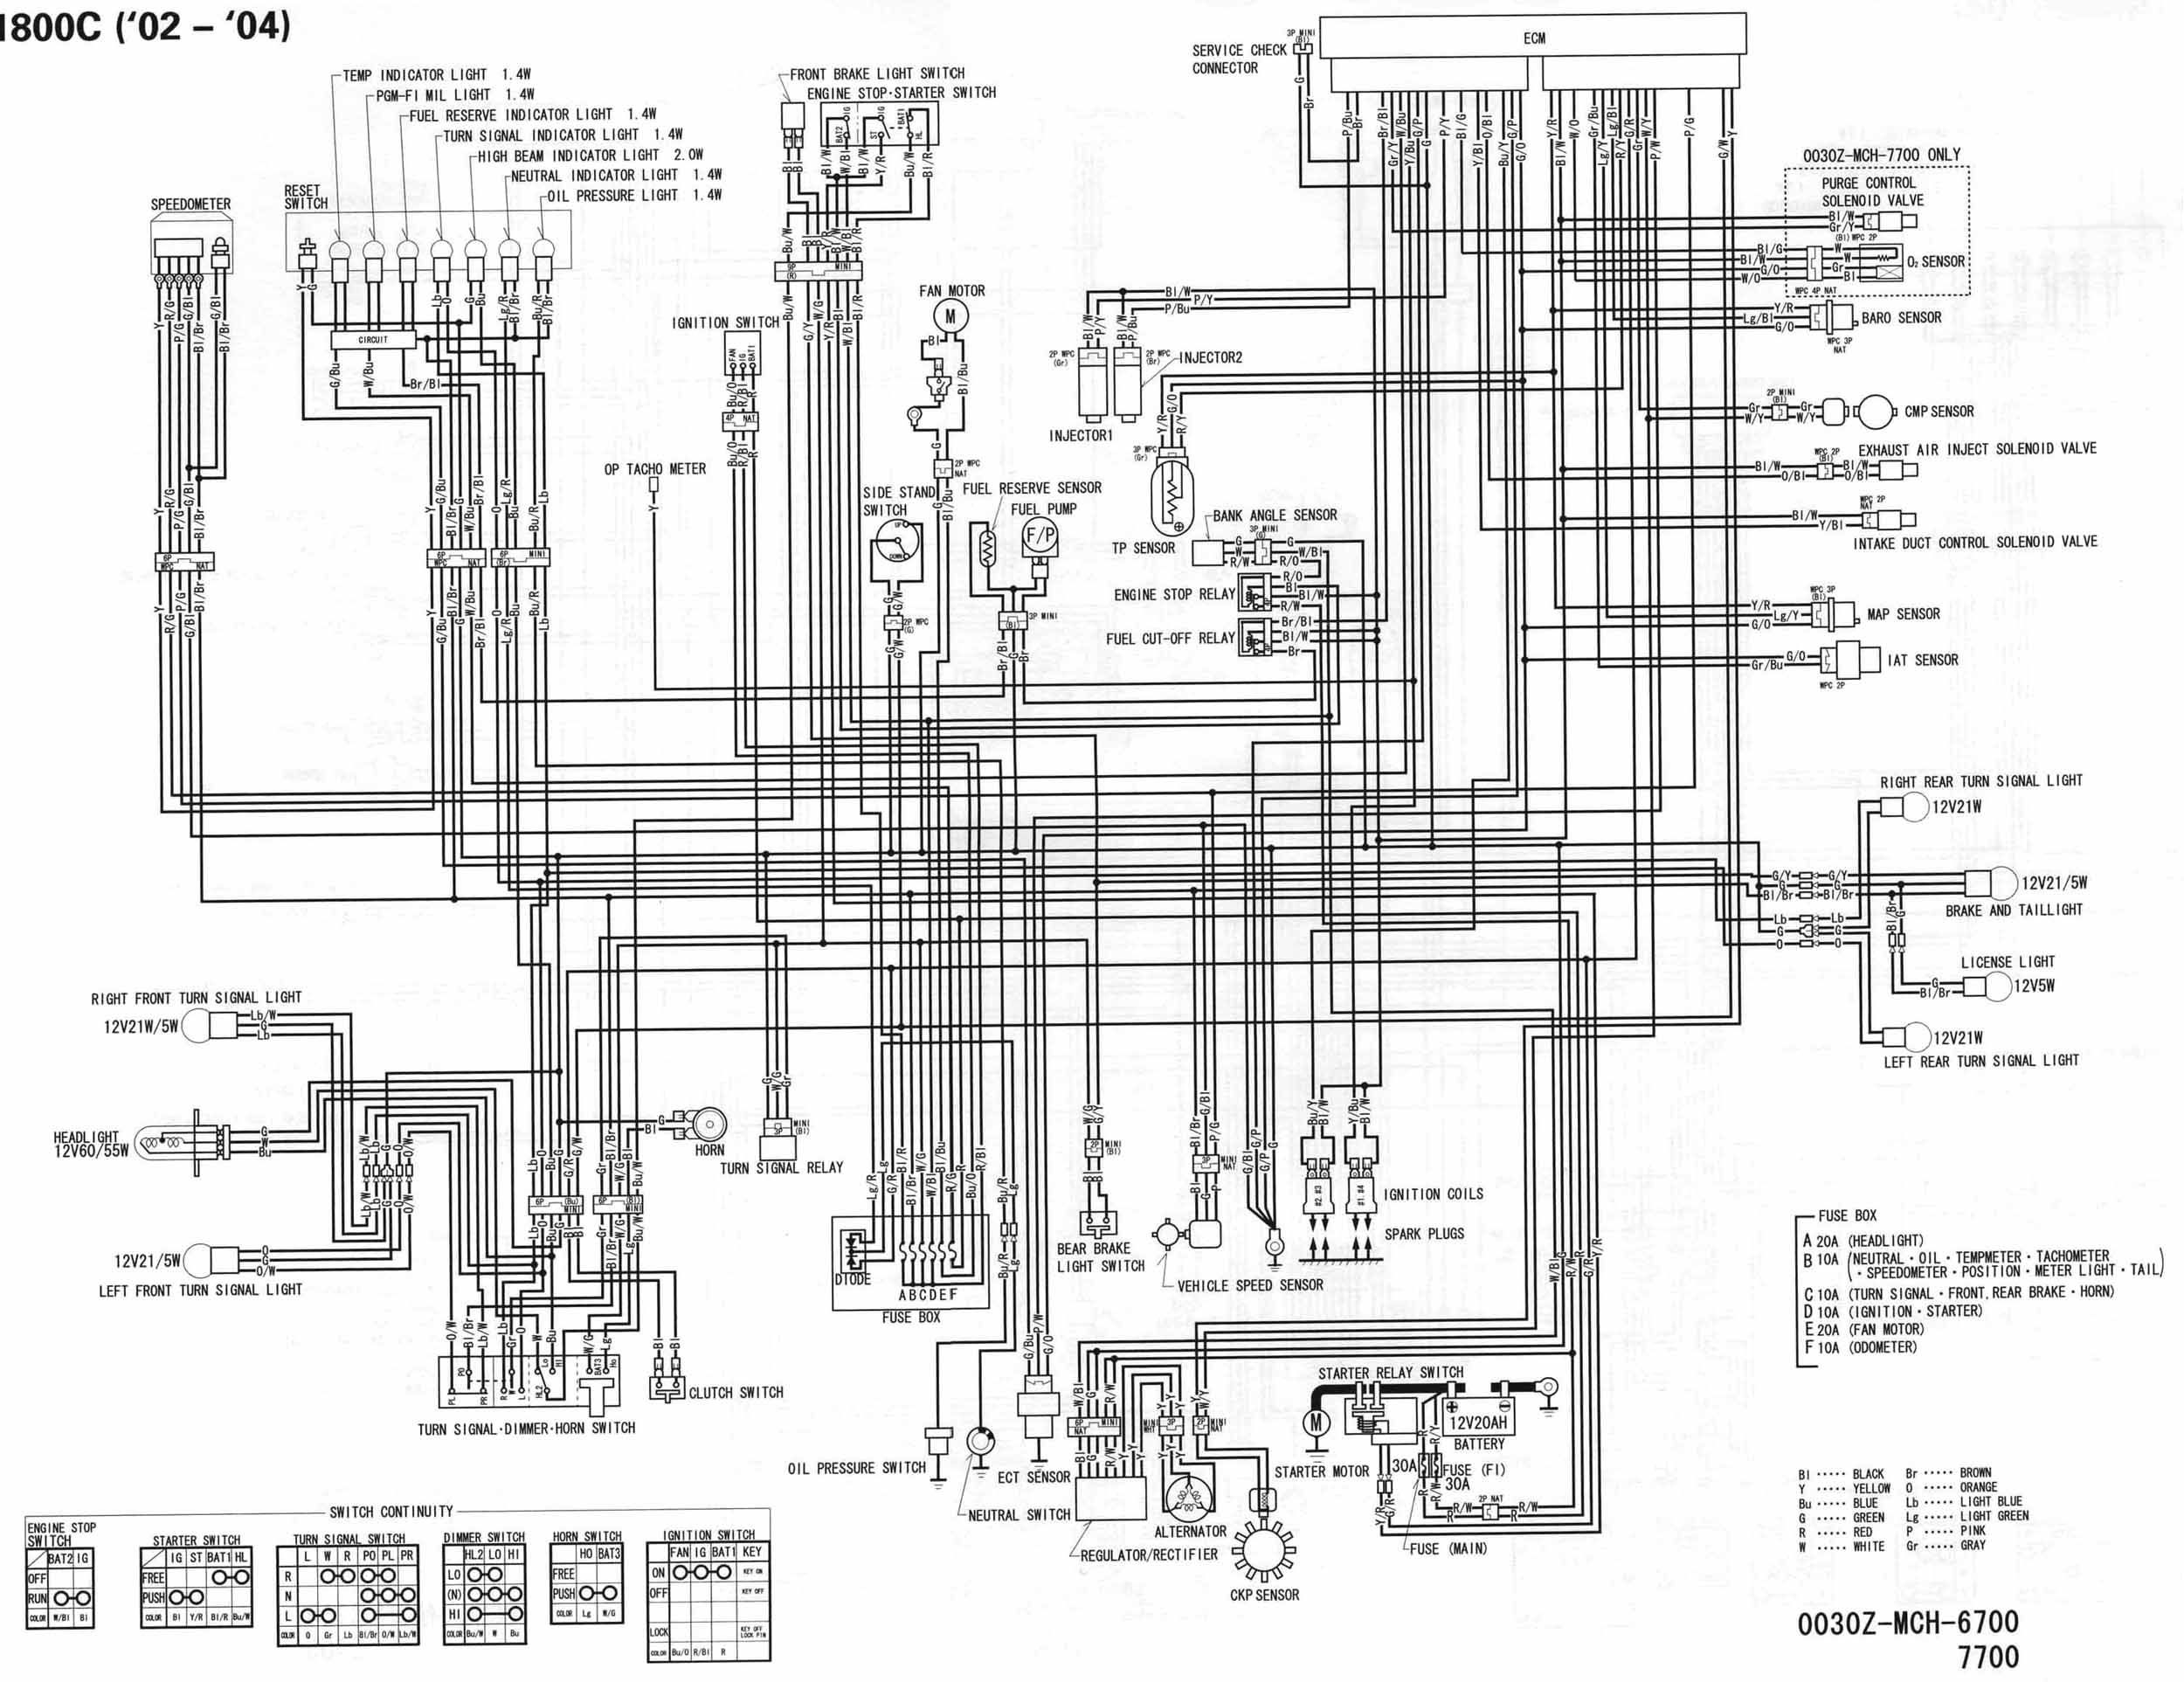 Wiring Diagram Of Motorcycle Http Bookingritzcarlton Info Wiring Diagram Of Motorcycle Motorcycle Wiring Electrical Diagram Victory Motorcycle